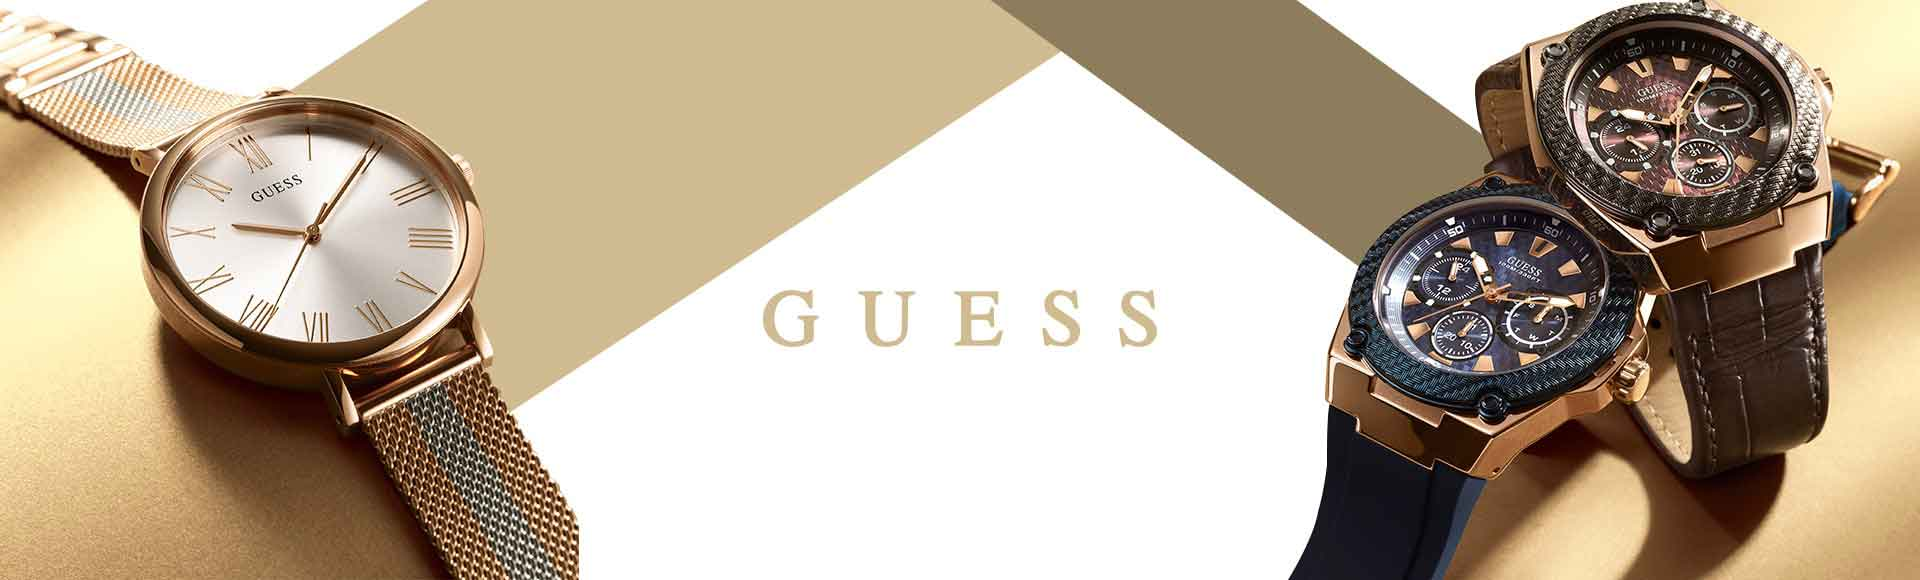 guess luxury time